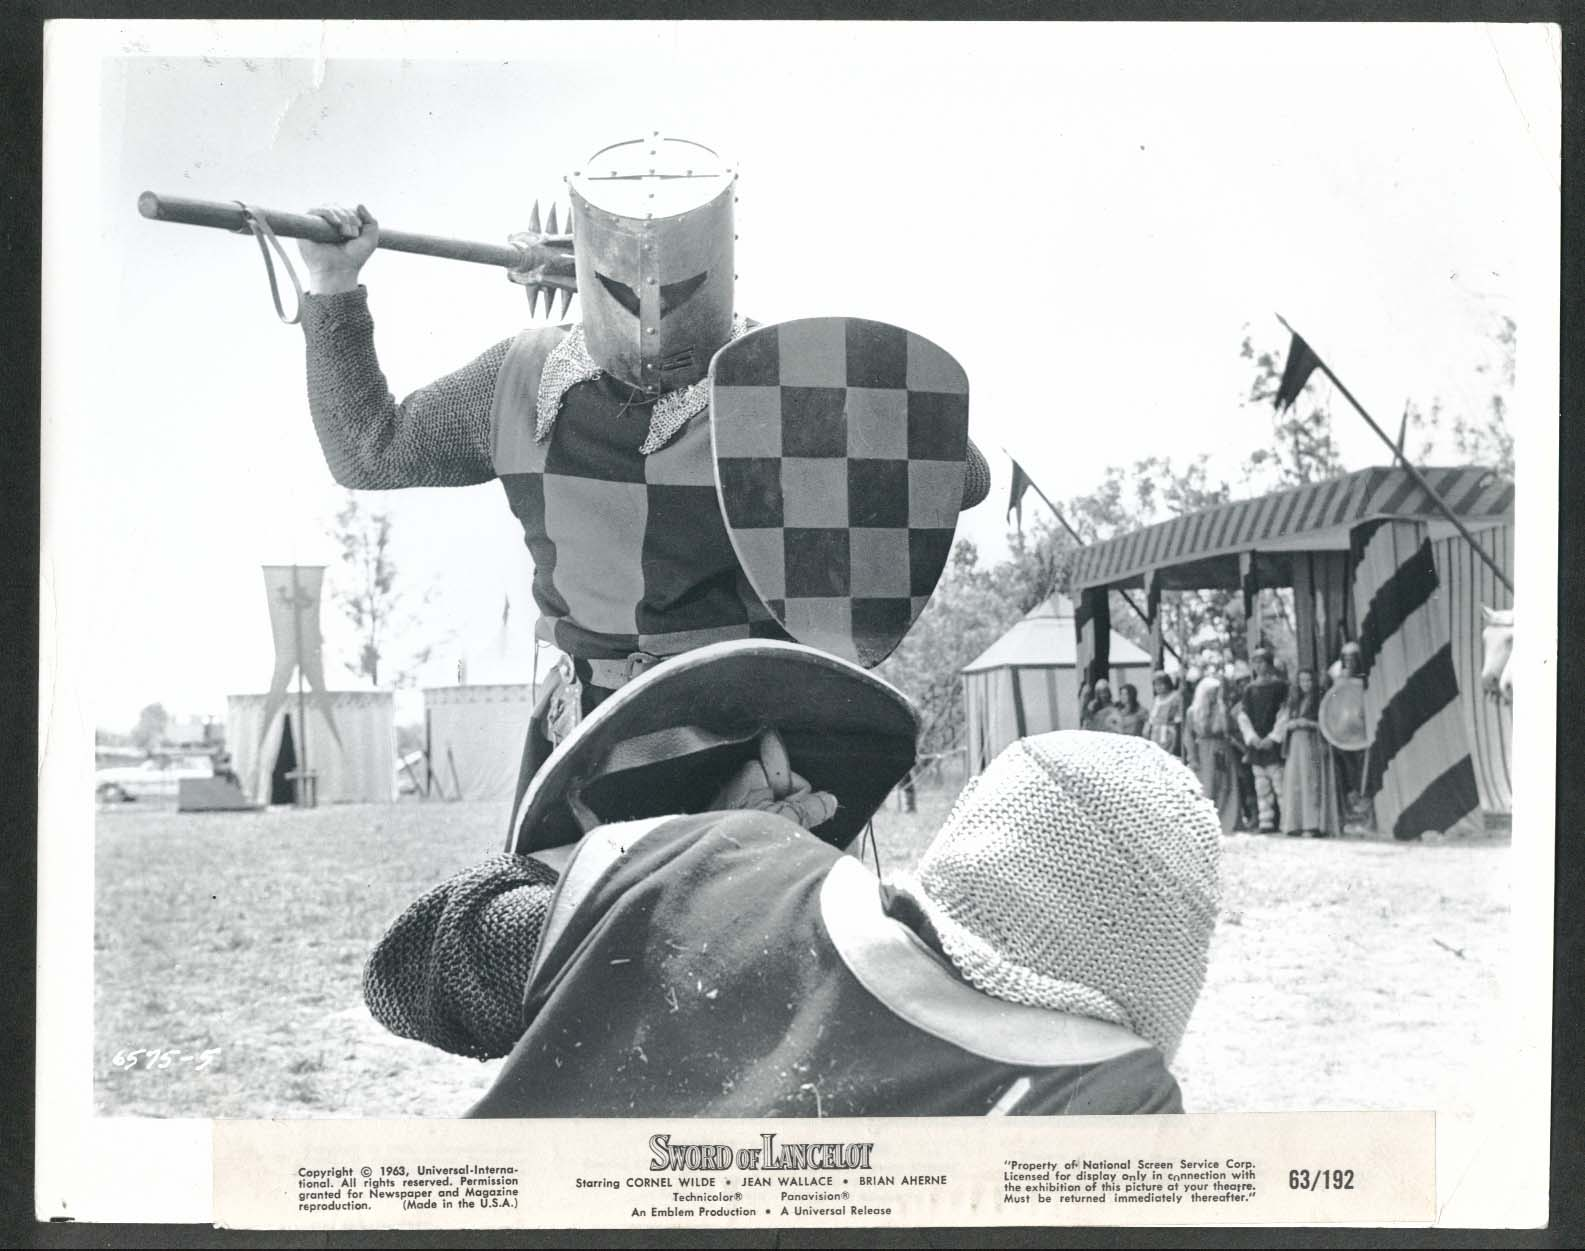 Image for Sword of Lancelot jousting fight scene 8x10 photograph 1963